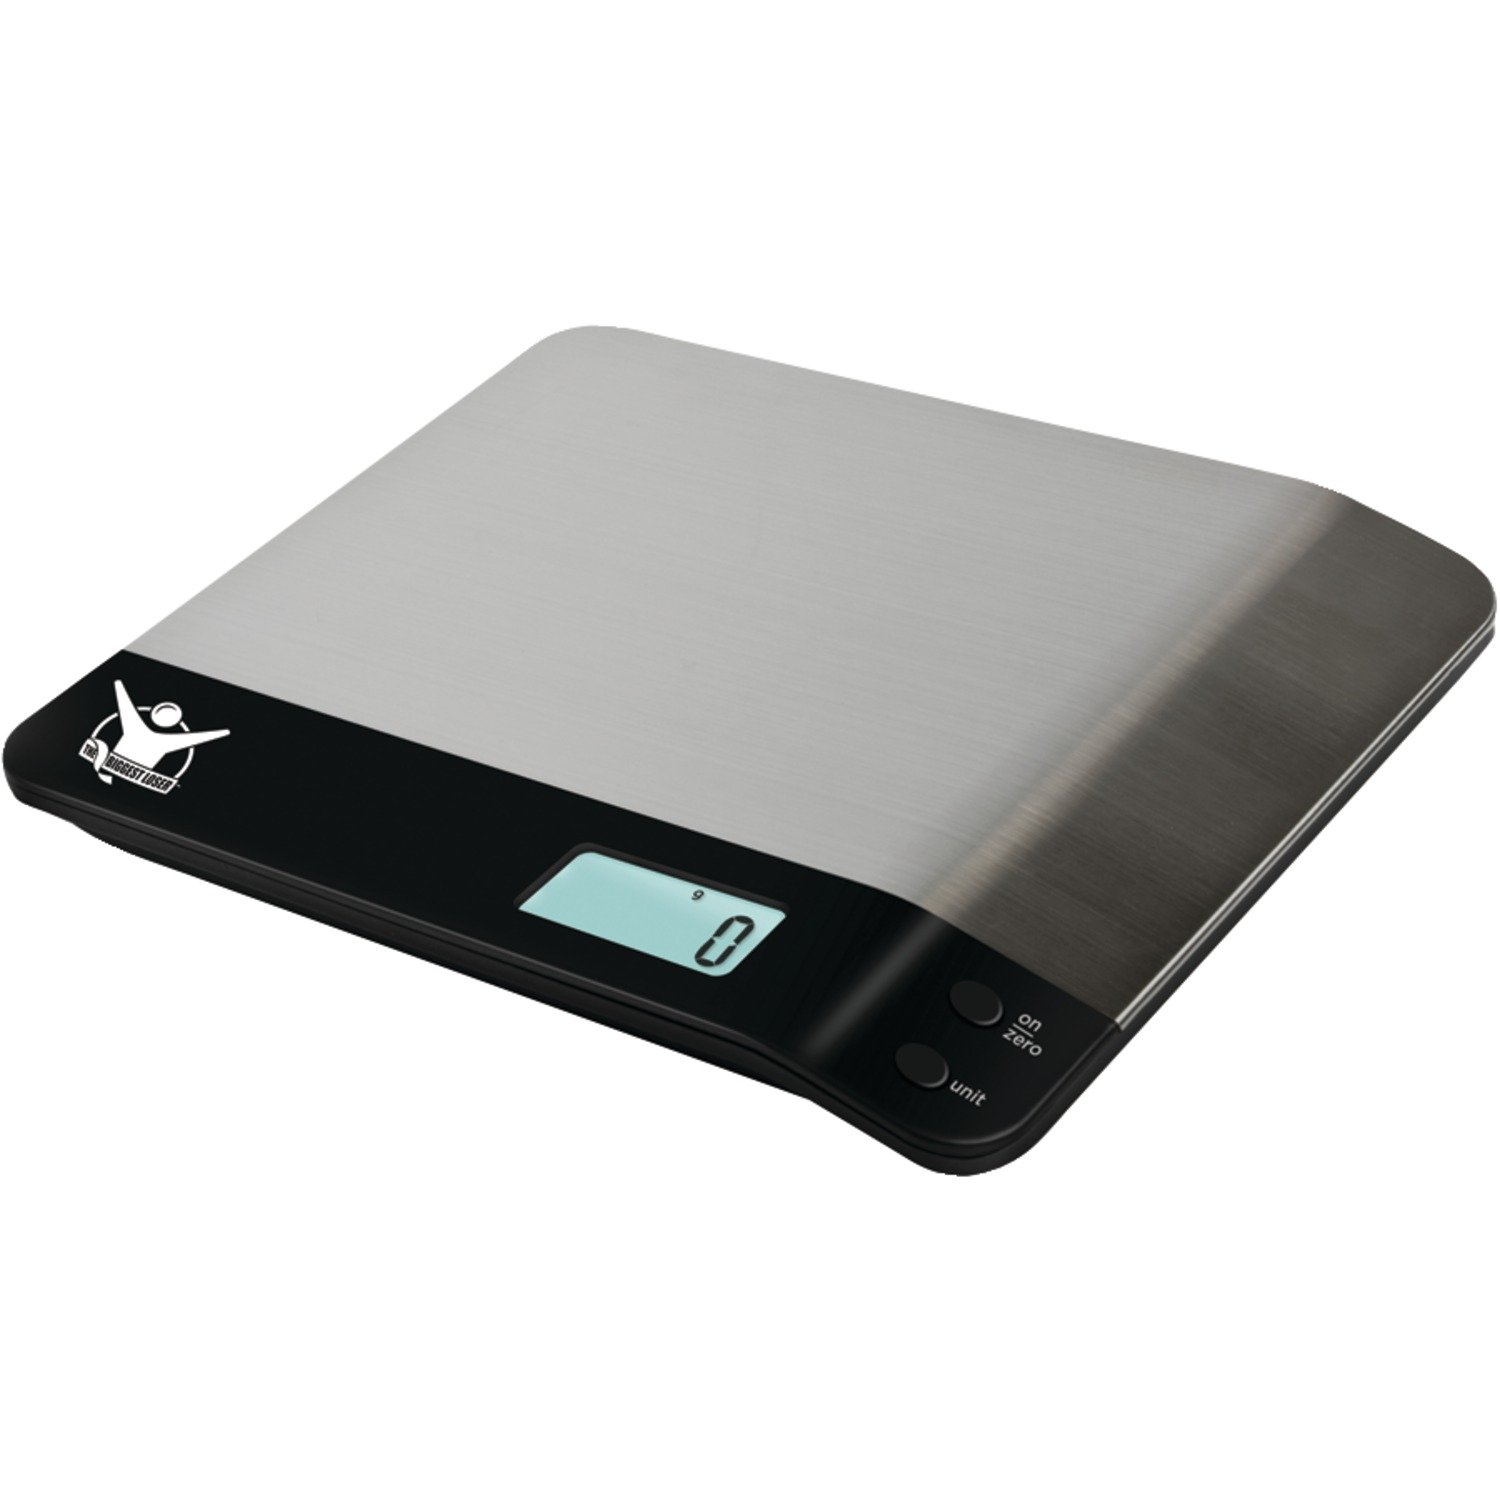 Amazon.com: Taylor Precision Products The Biggest Loser Kitchen Scale:  Kitchen U0026 Dining